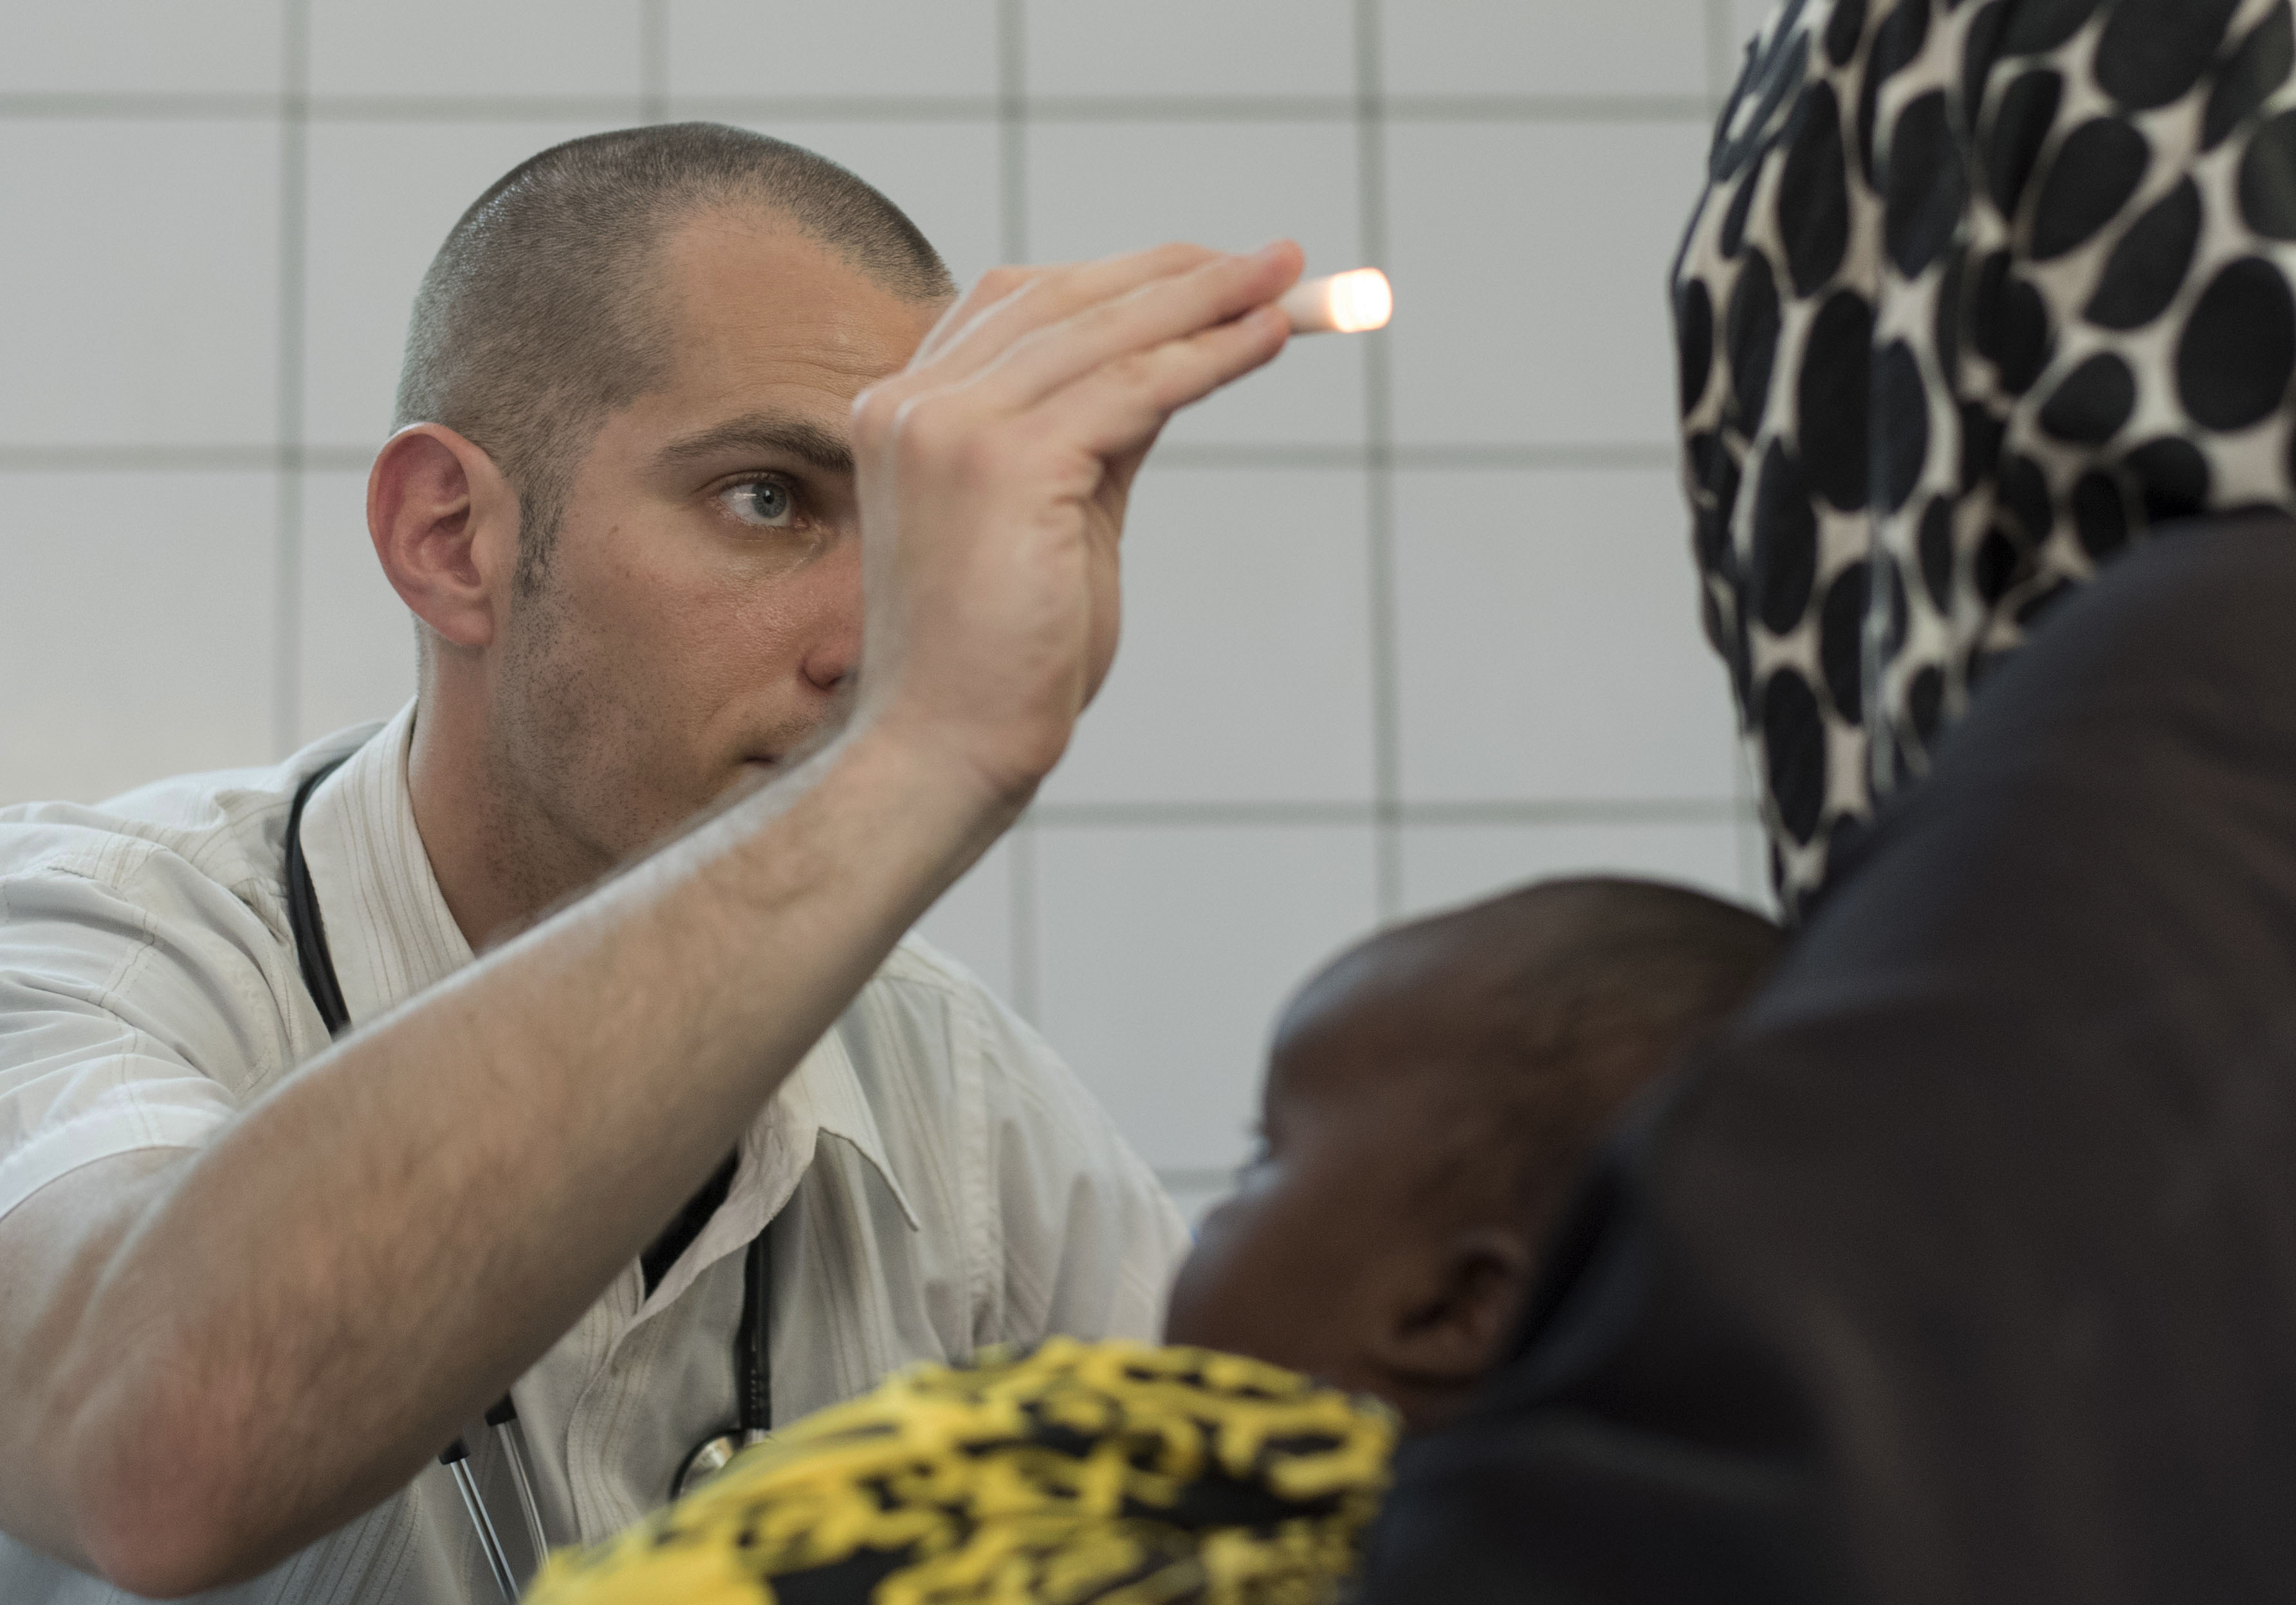 DIKHIL, Djibouti – U.S. Army Maj. Andrew Mosier, 403rd Civil Affairs Battalion medical cell chief medical officer, conducts a health assessment on a Dikhil woman during a two-day medical civic action program at Dikhil, Djibouti, May 11, 2016. The 403rd CA BN partnered with Djibouti Ministry of Health and Cuban medical personnel to provide medical care and treatment to approximately 140 patients while exchanging medical knowledge. (U.S. Air Force photo by Staff Sgt. Tiffany DeNault)